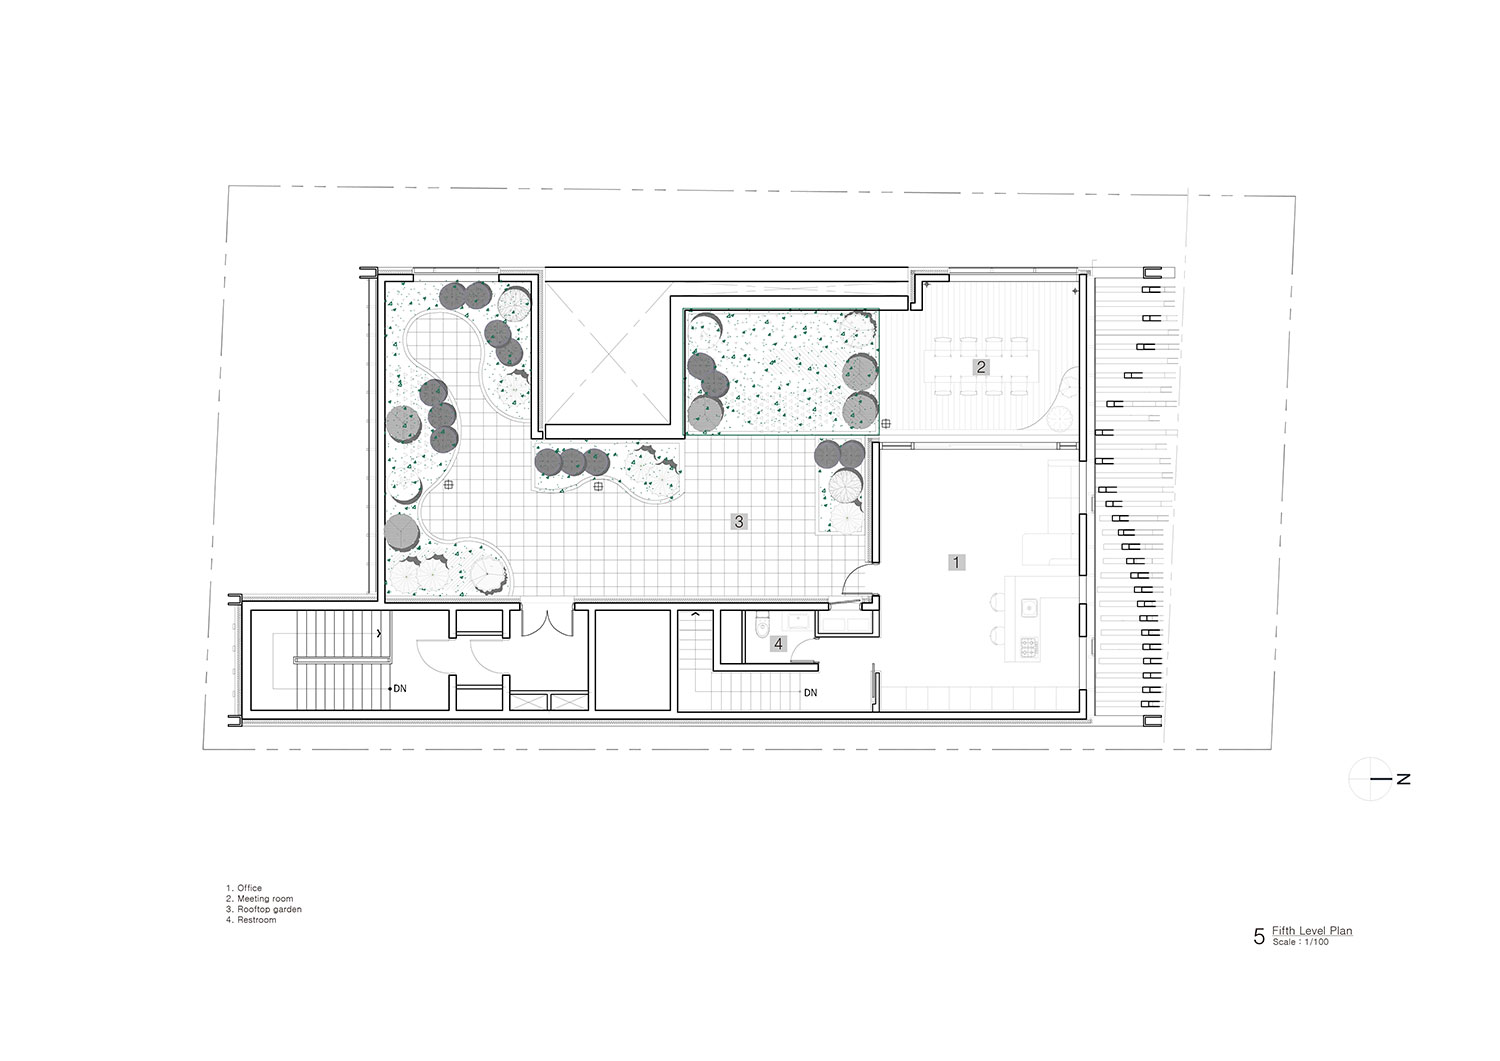 Fifth Level Plan Unsangdong Architects Co., Ltd.}